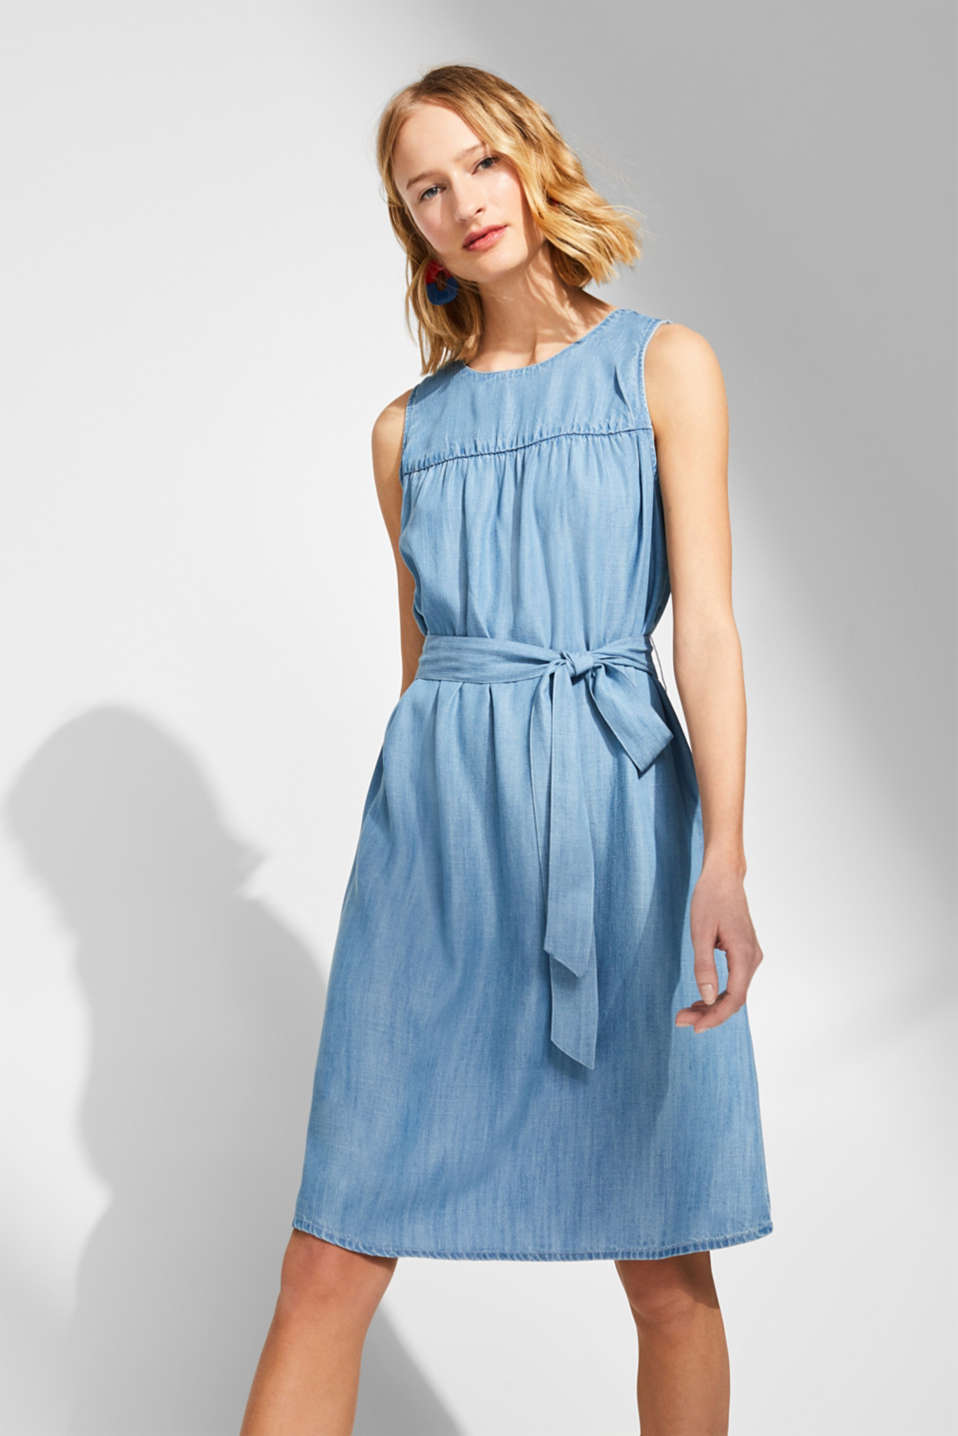 edc - A-line dress in 100% lyocell with a tie-around belt